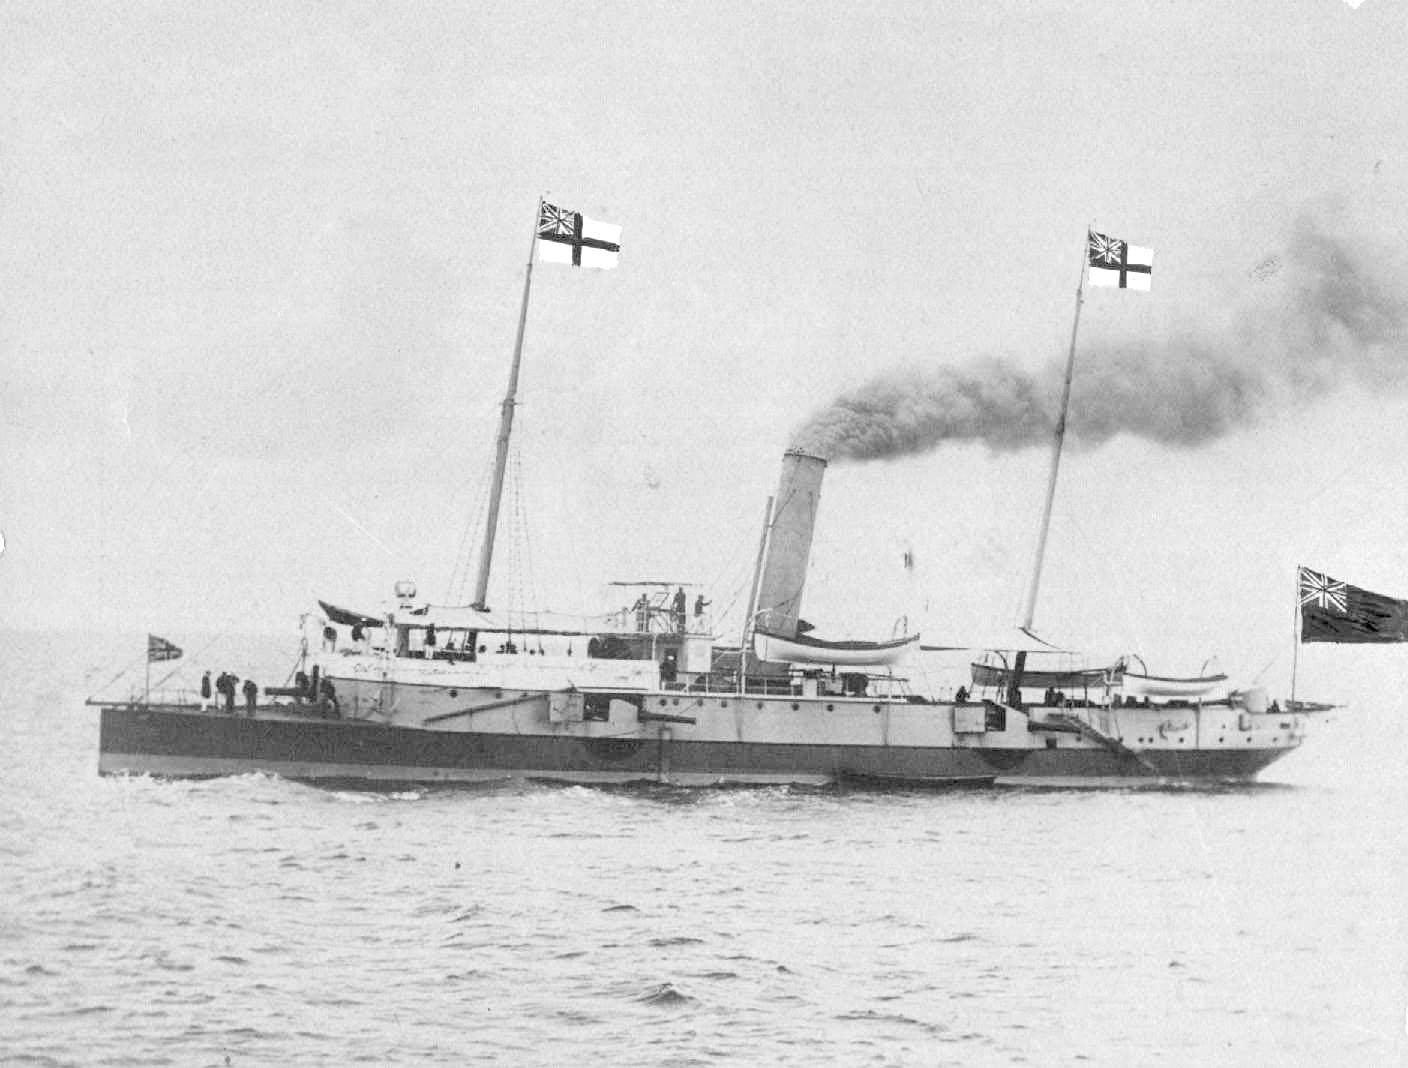 This small, heavily armed twin screw steel cruiser was built in 1883 at Newcastle-on-Tyne by William Armstrong & Co to the order of the South Australian Government.  She was commissioned on the 19th June 1884, (her captain was J.C.P. Walcot, RN) and was b